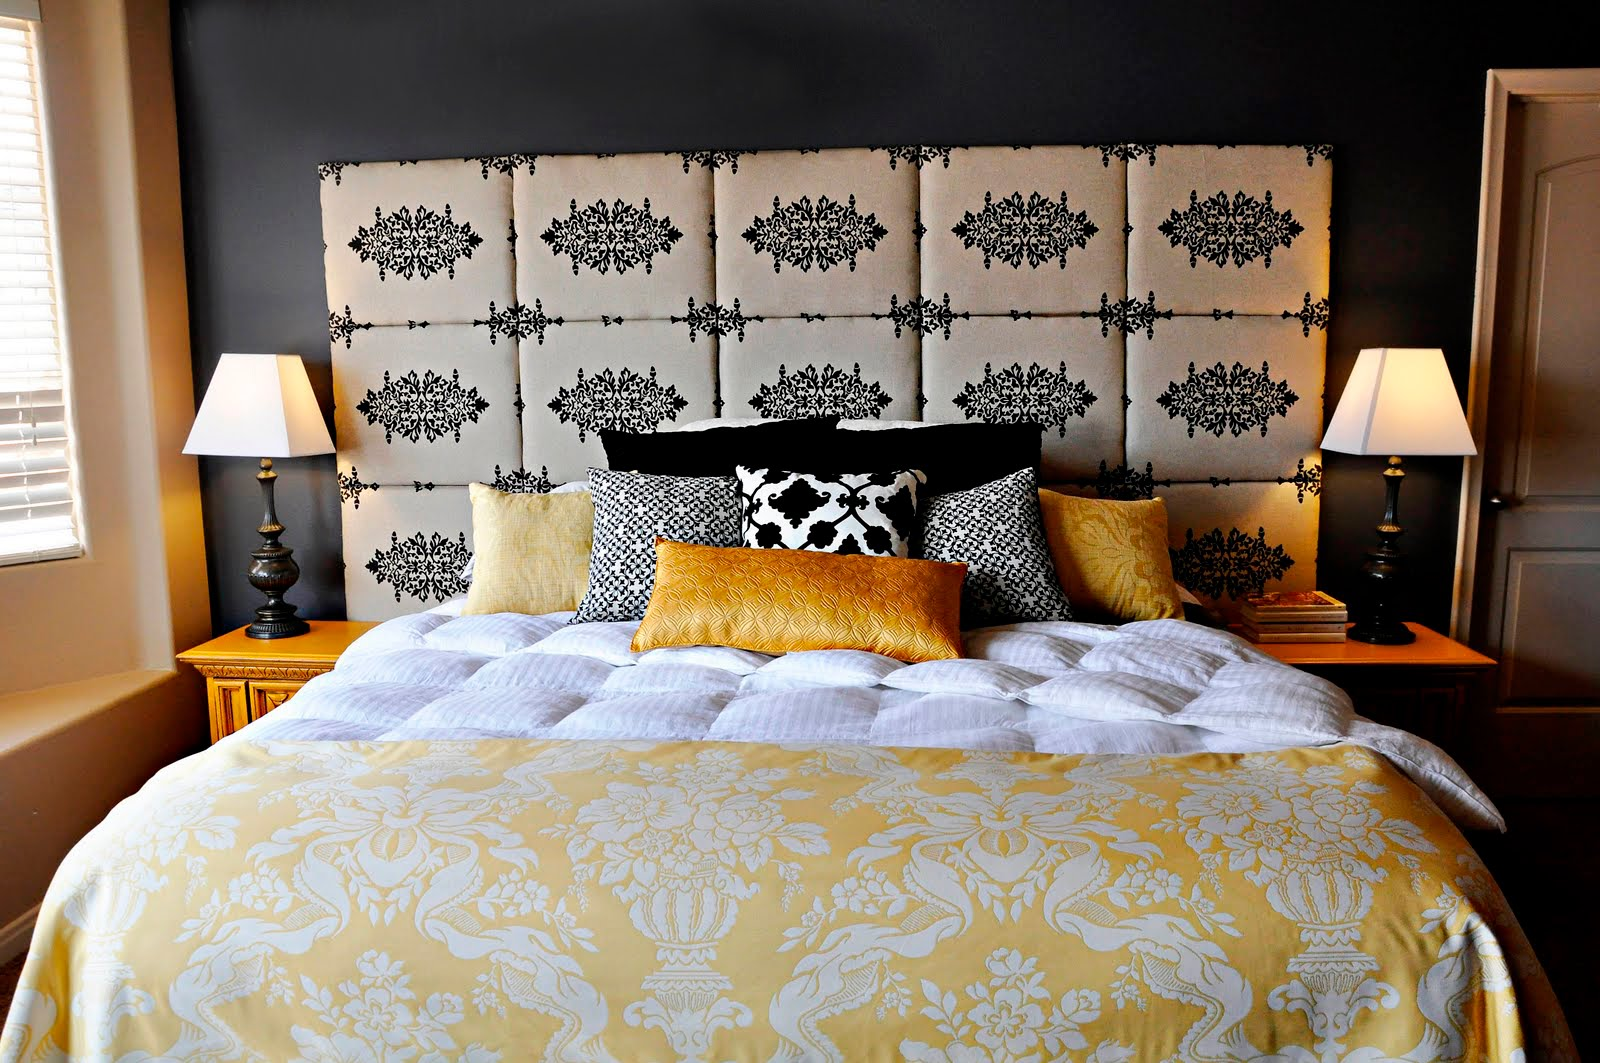 Diy headboard project by brooke made by girl for Cool bed head ideas